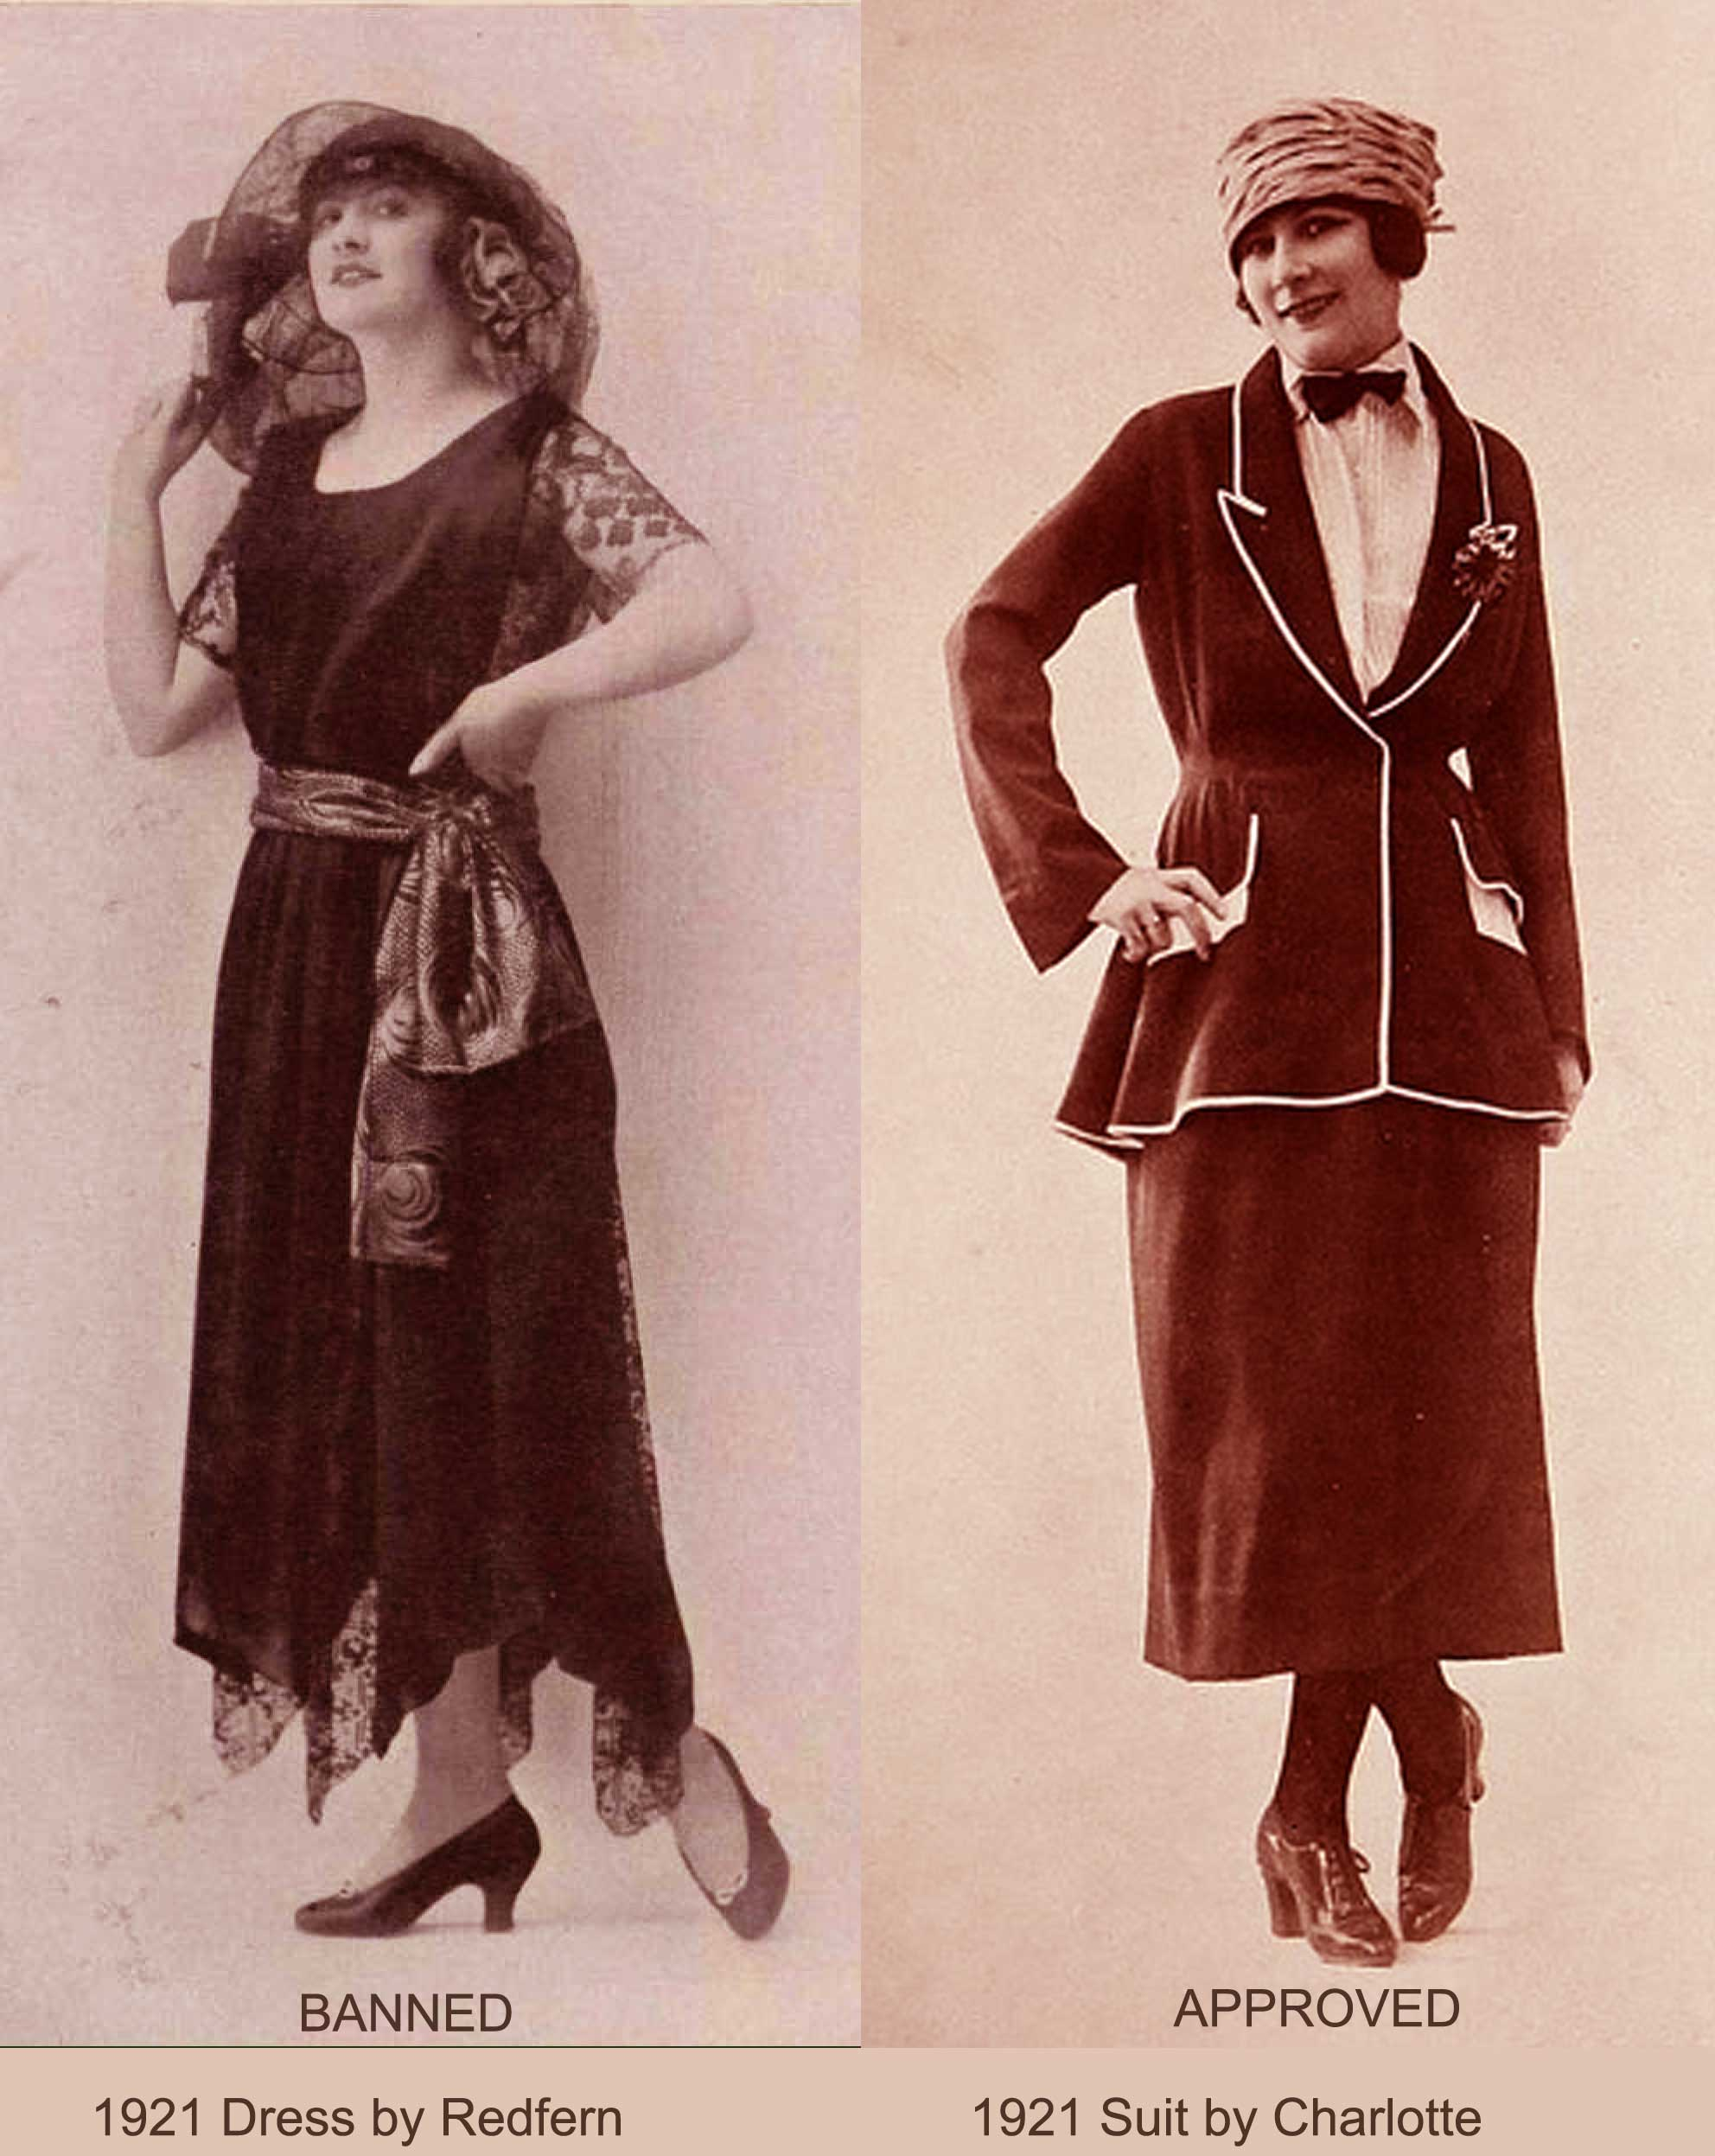 1920s Fashion - US Banks ban Flappers - 1922 report ...